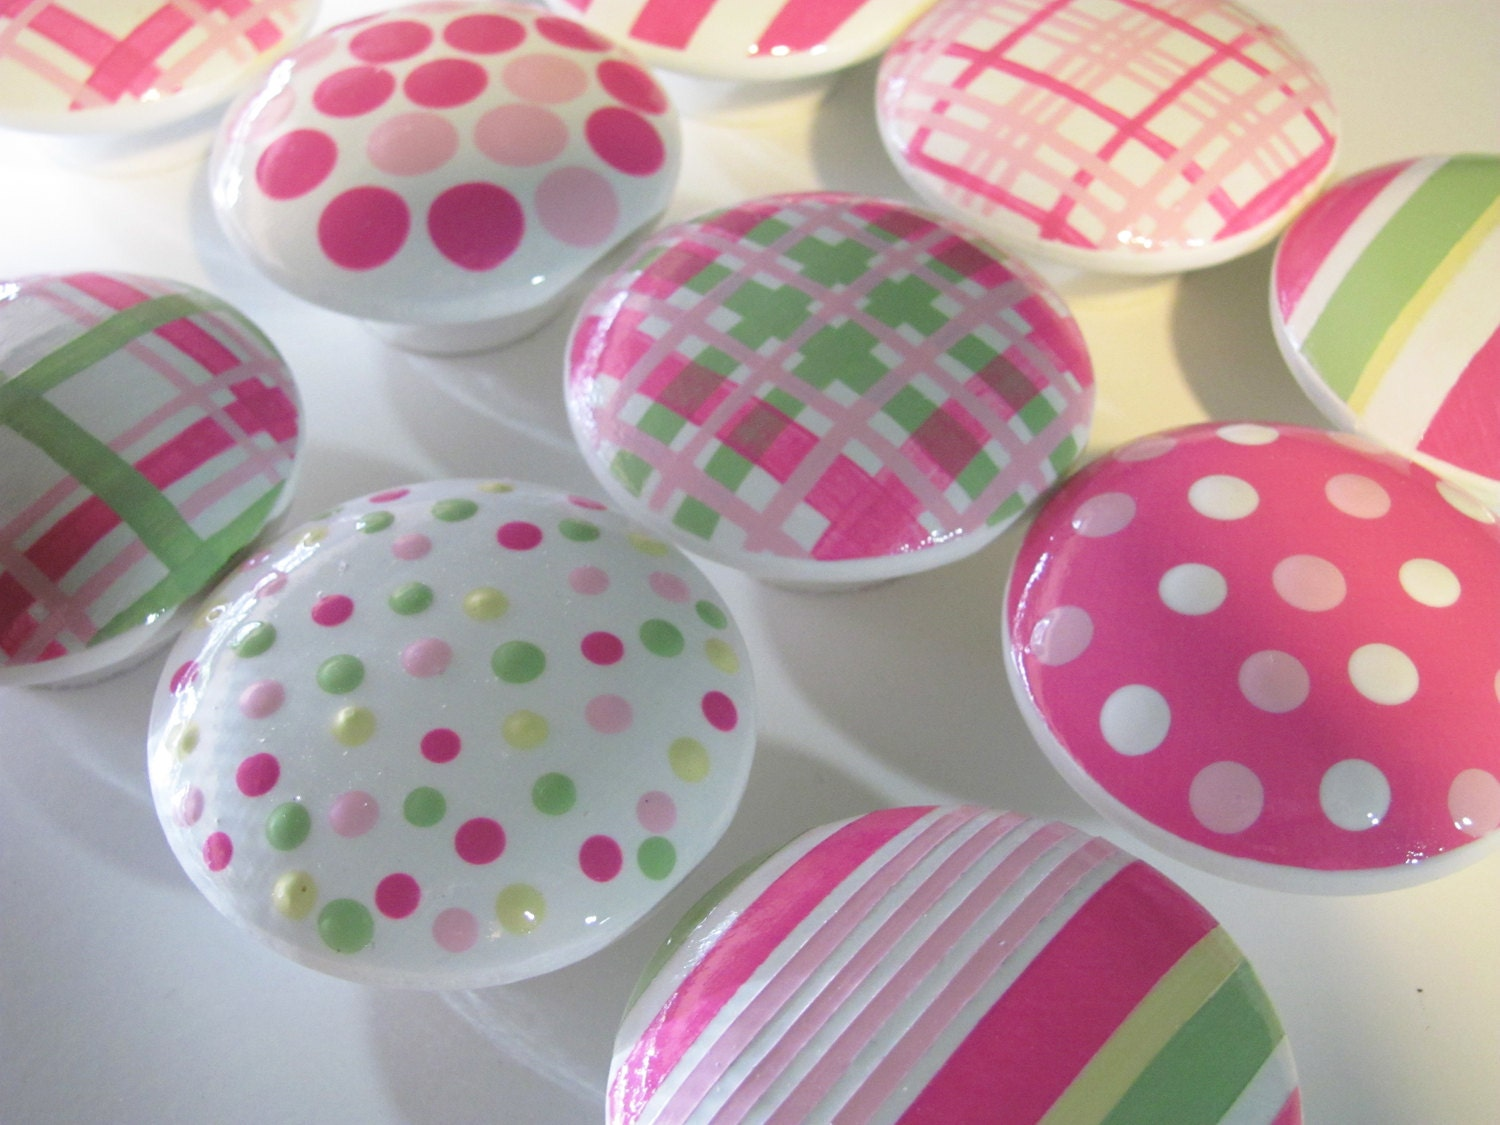 Kid Knobs- Children's Drawer Knobs- Hand Painted Wood Knobs - Stripes, Polka Dot and Plaid Knobs Pink and Green - Size 2 inches-SET OF 12